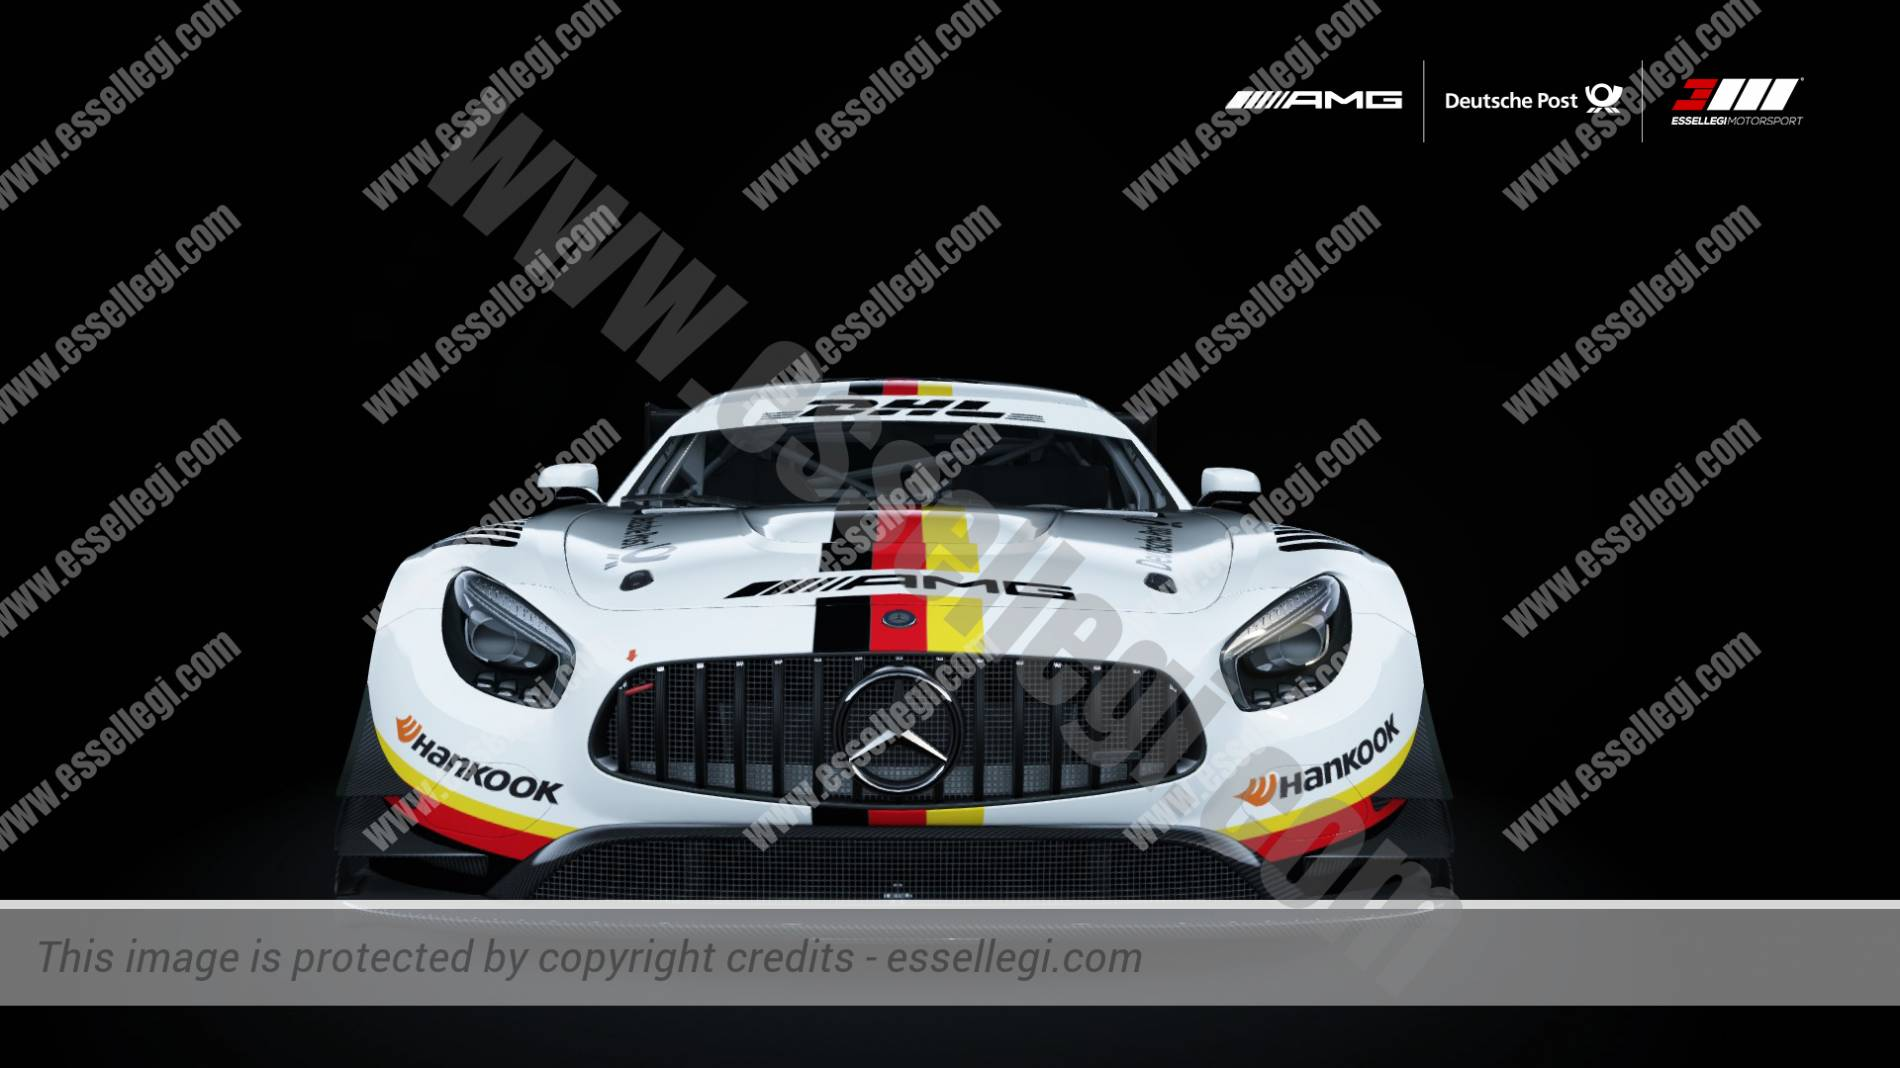 Mercedes benz amg gt3 deutsche post motorsport livery by for Mercedes benz motorsport